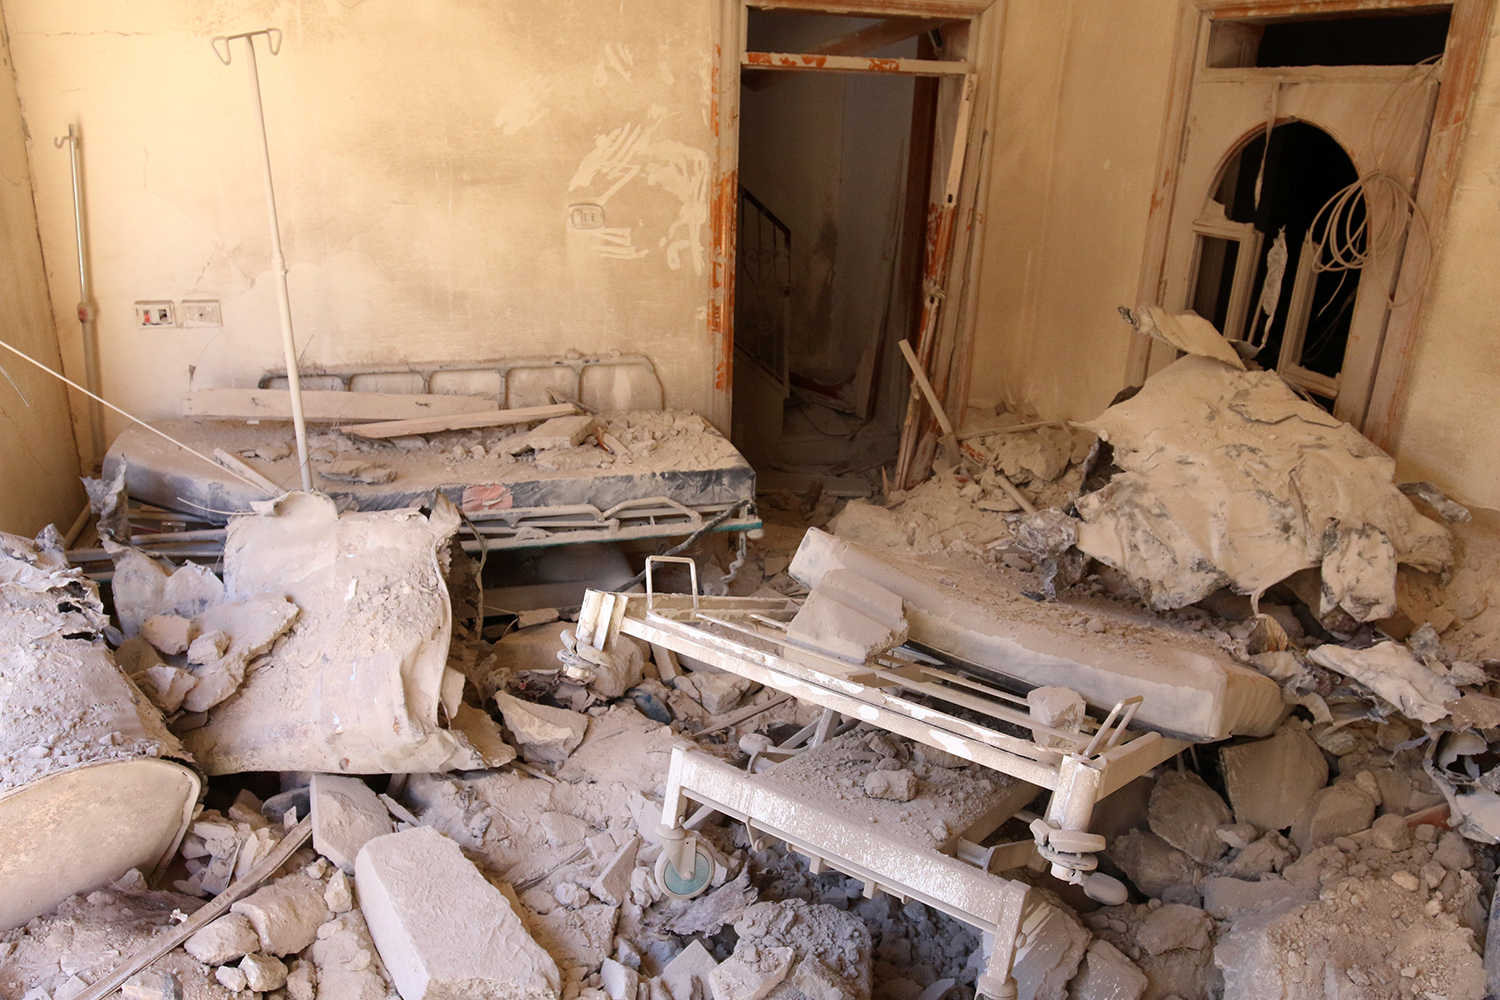 ALEPPO 2016-10-01 A damaged field hospital room is seen after airstrikes in a rebel held area in Aleppo, Syria October 1, 2016. REUTERS/Abdalrhman Ismail TPX IMAGES OF THE DAY Photo: / REUTERS / TT / kod 72000